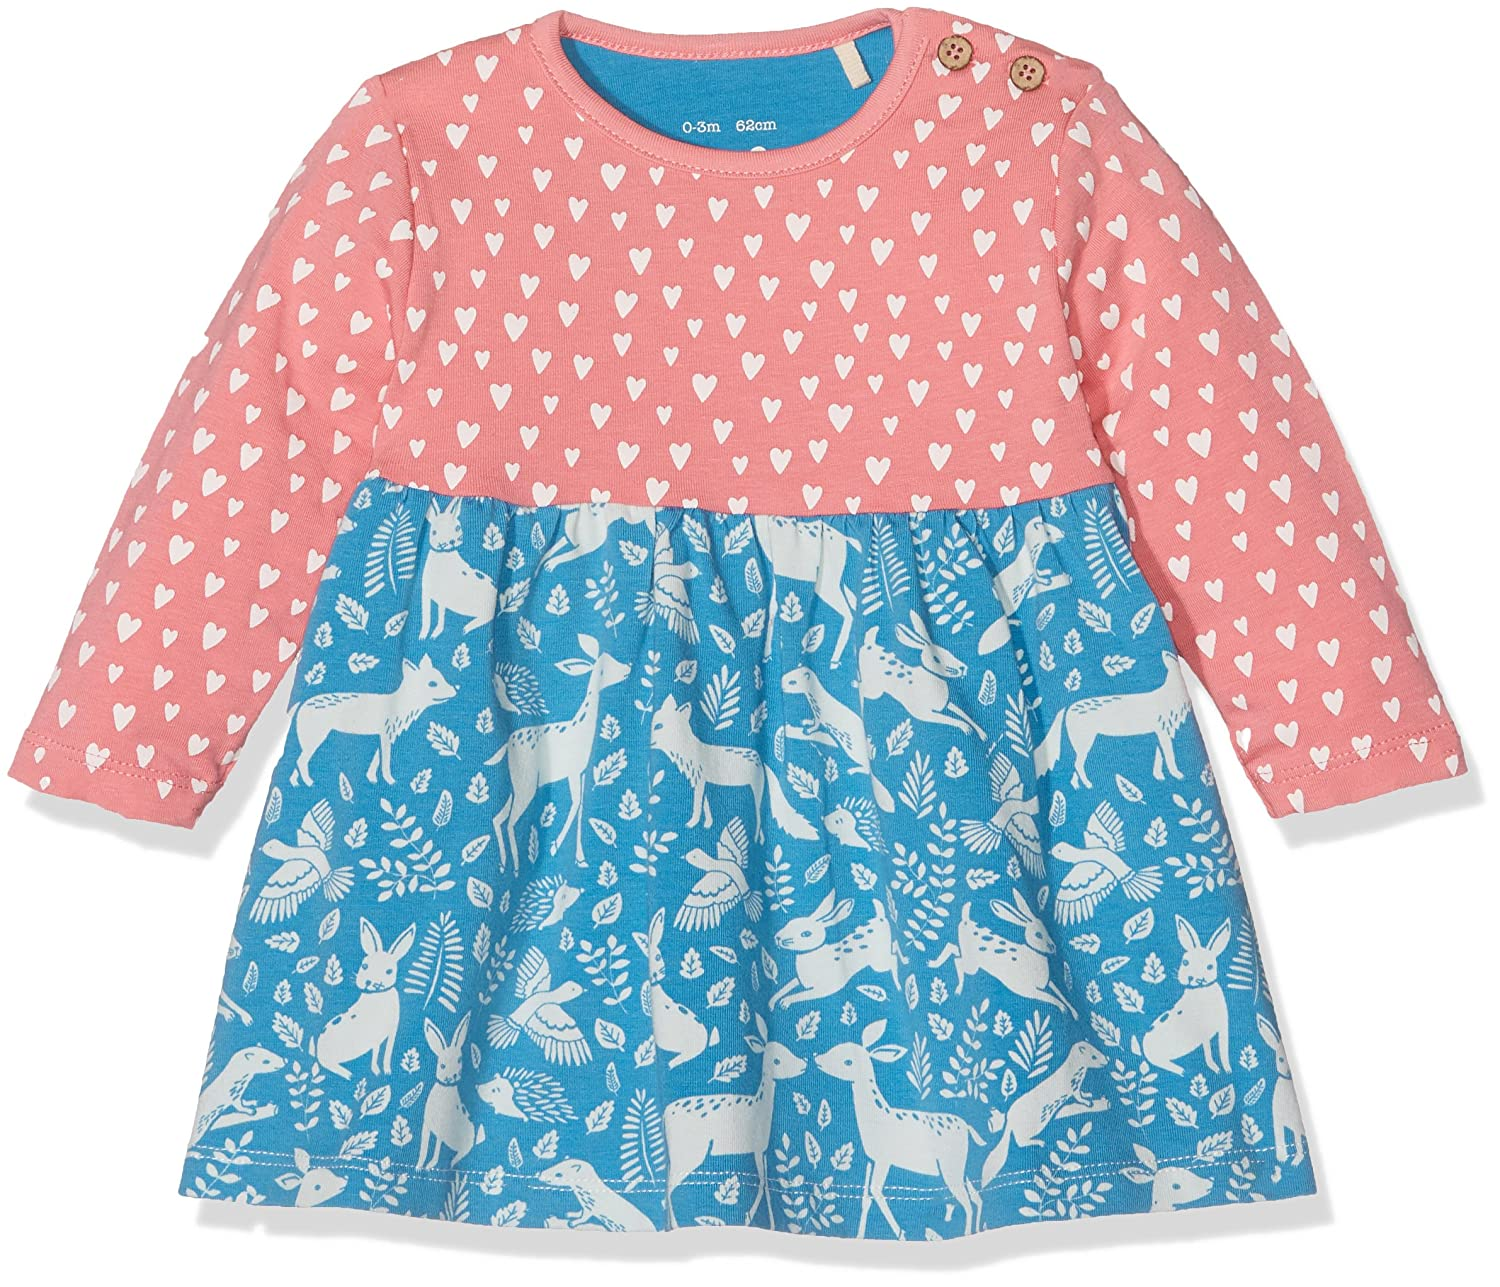 Kite Mash-up Dress Bluejay, Vestito Bimba BG536